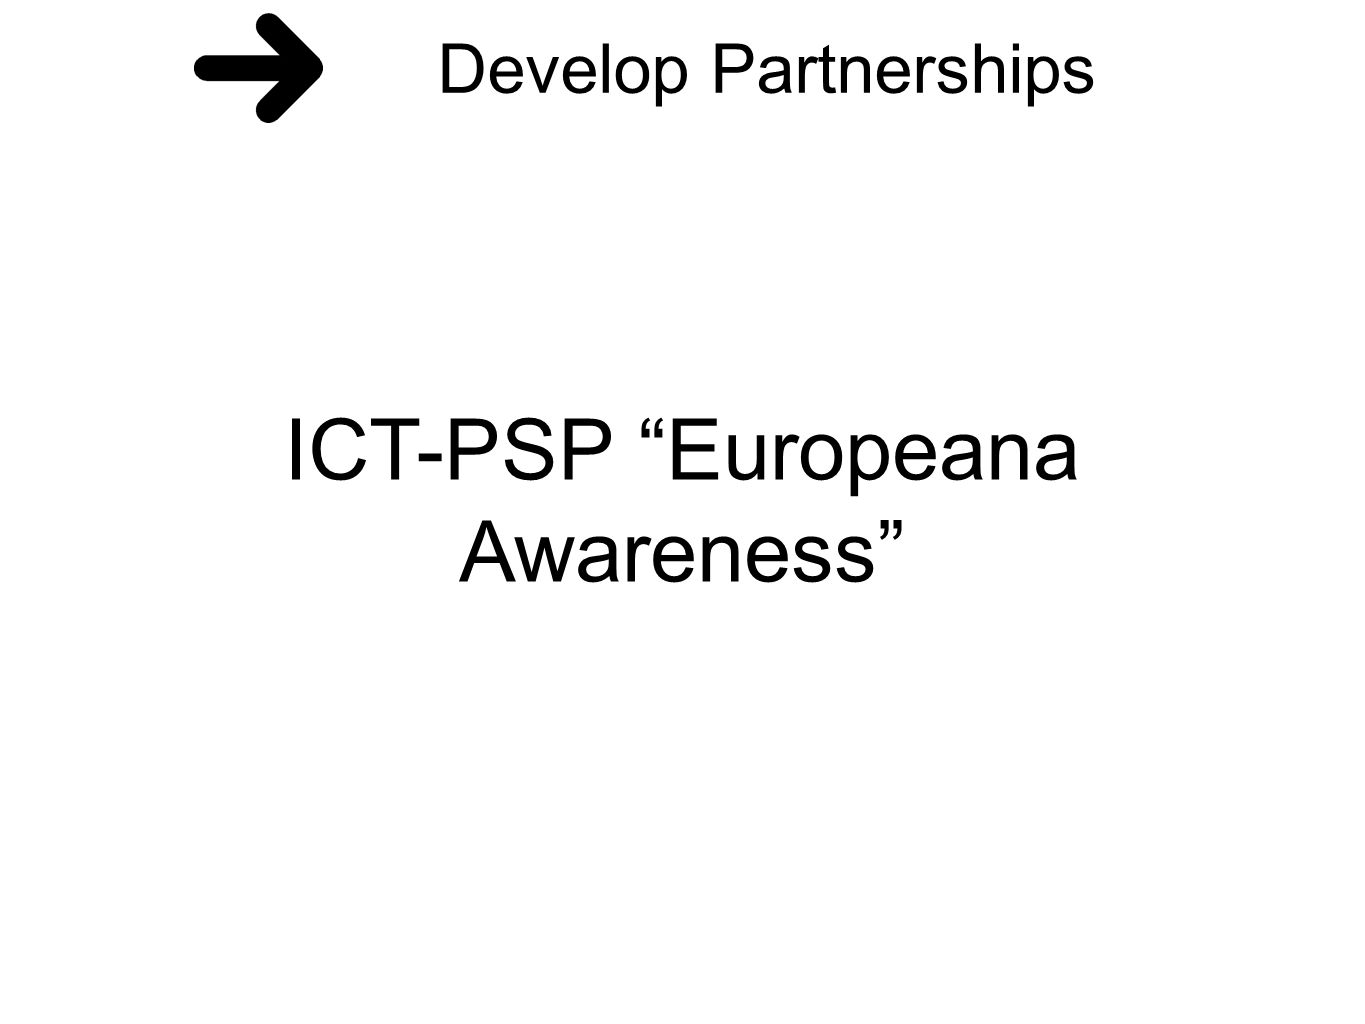 Develop Partnerships ICT-PSP Europeana Awareness